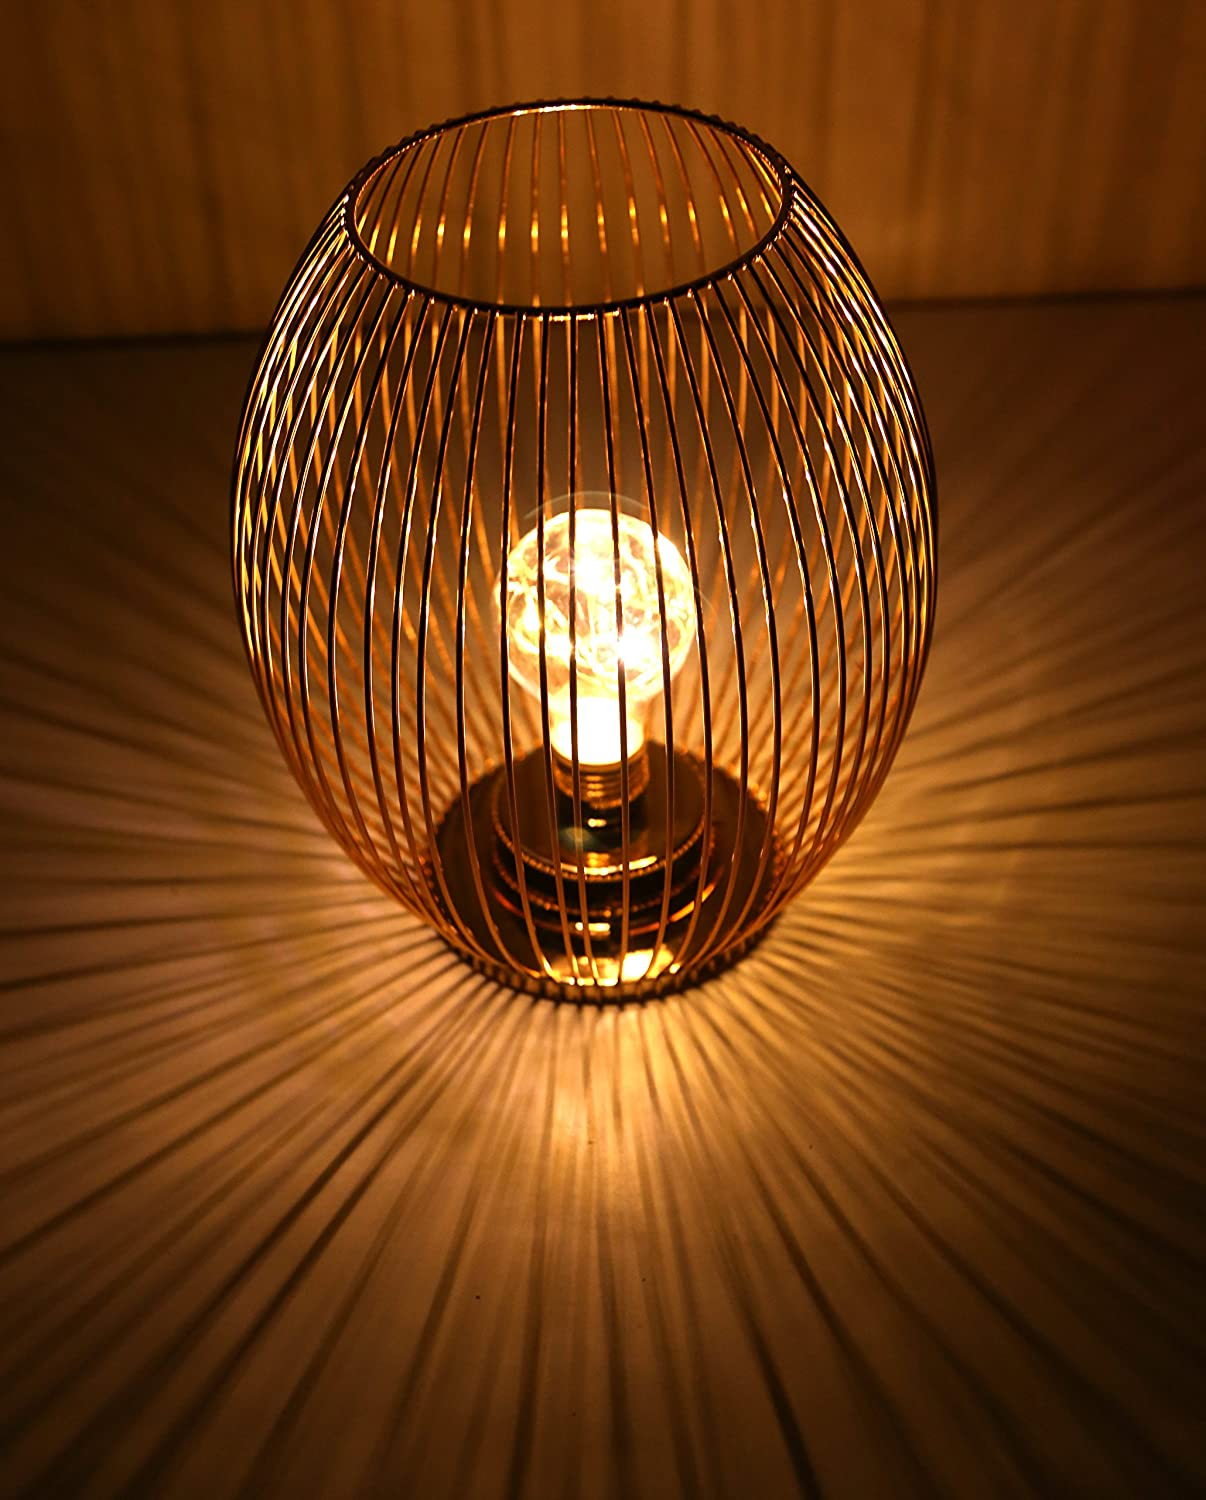 Auslese Wire Mesh Electronics Lantern Sphere Metal Lamp Mood Light Garden Size: (H:23,W:19) cm